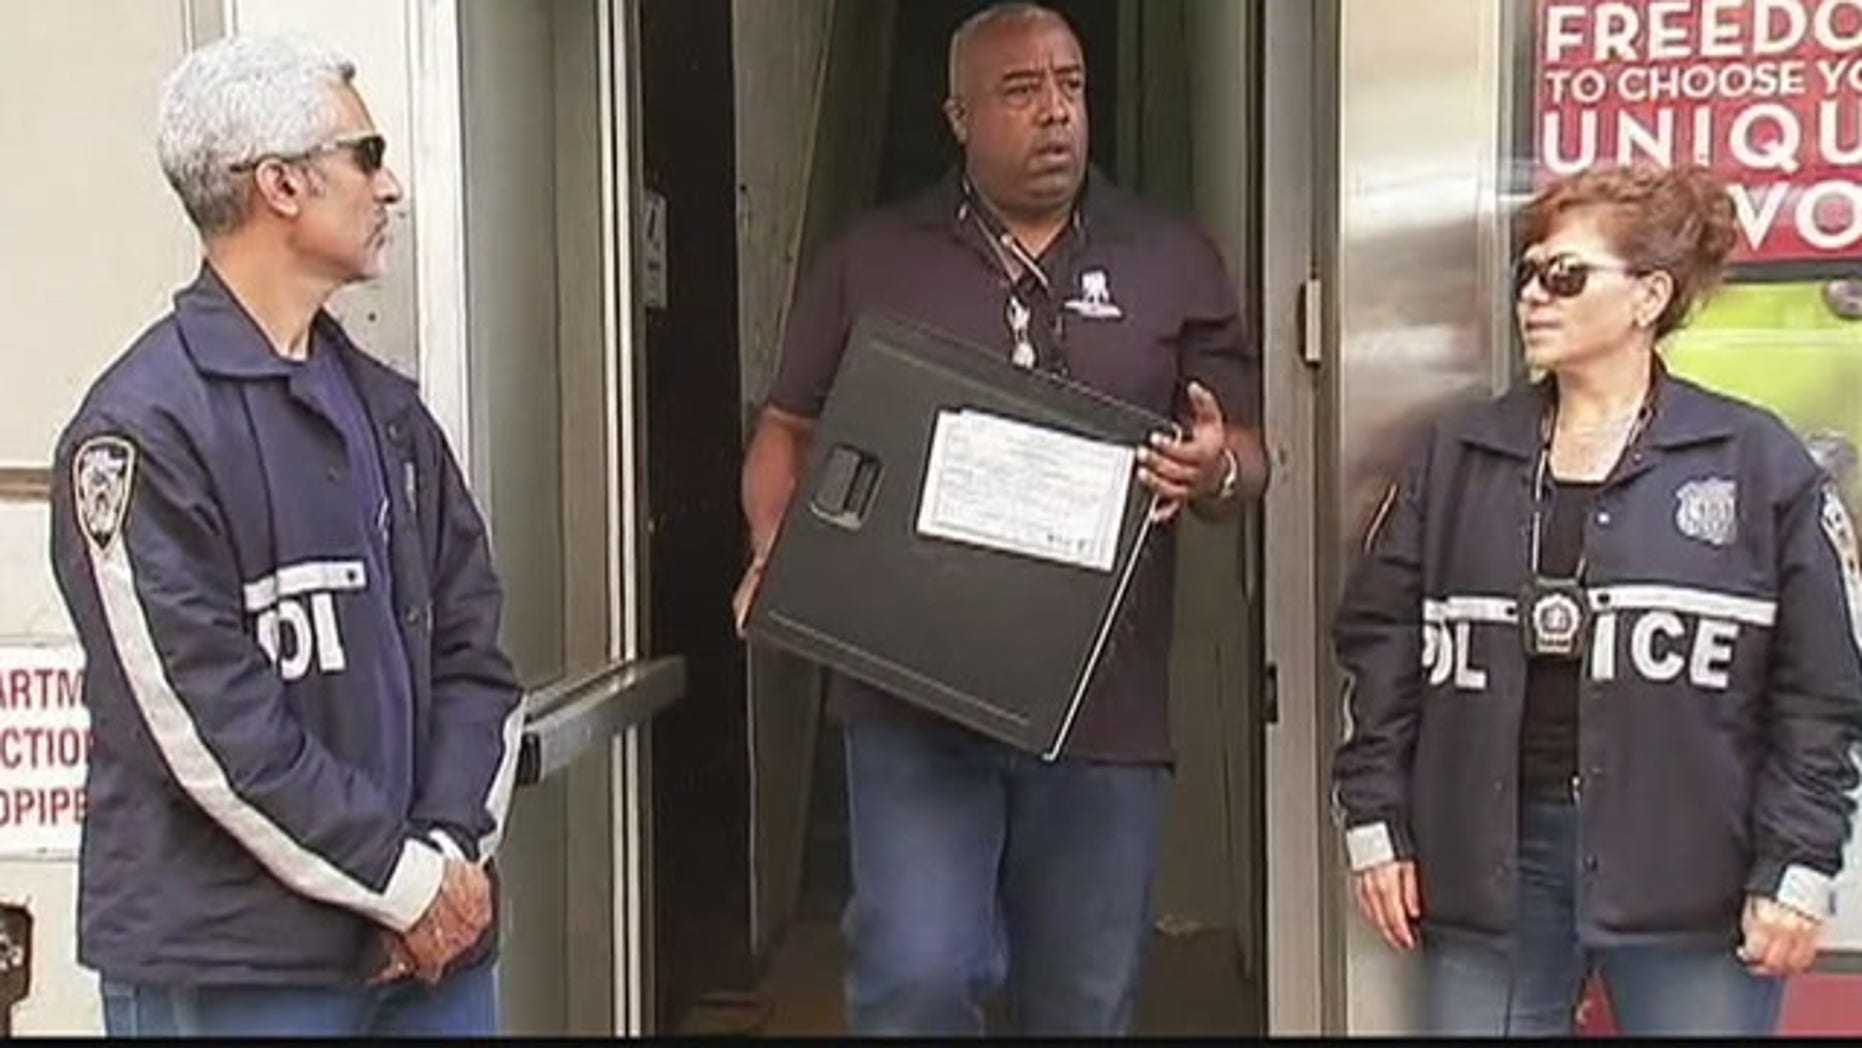 Aug. 25, 2015: Investigators remove computer equipment from the offices of Rentboy.com in New York City. (WNYW)